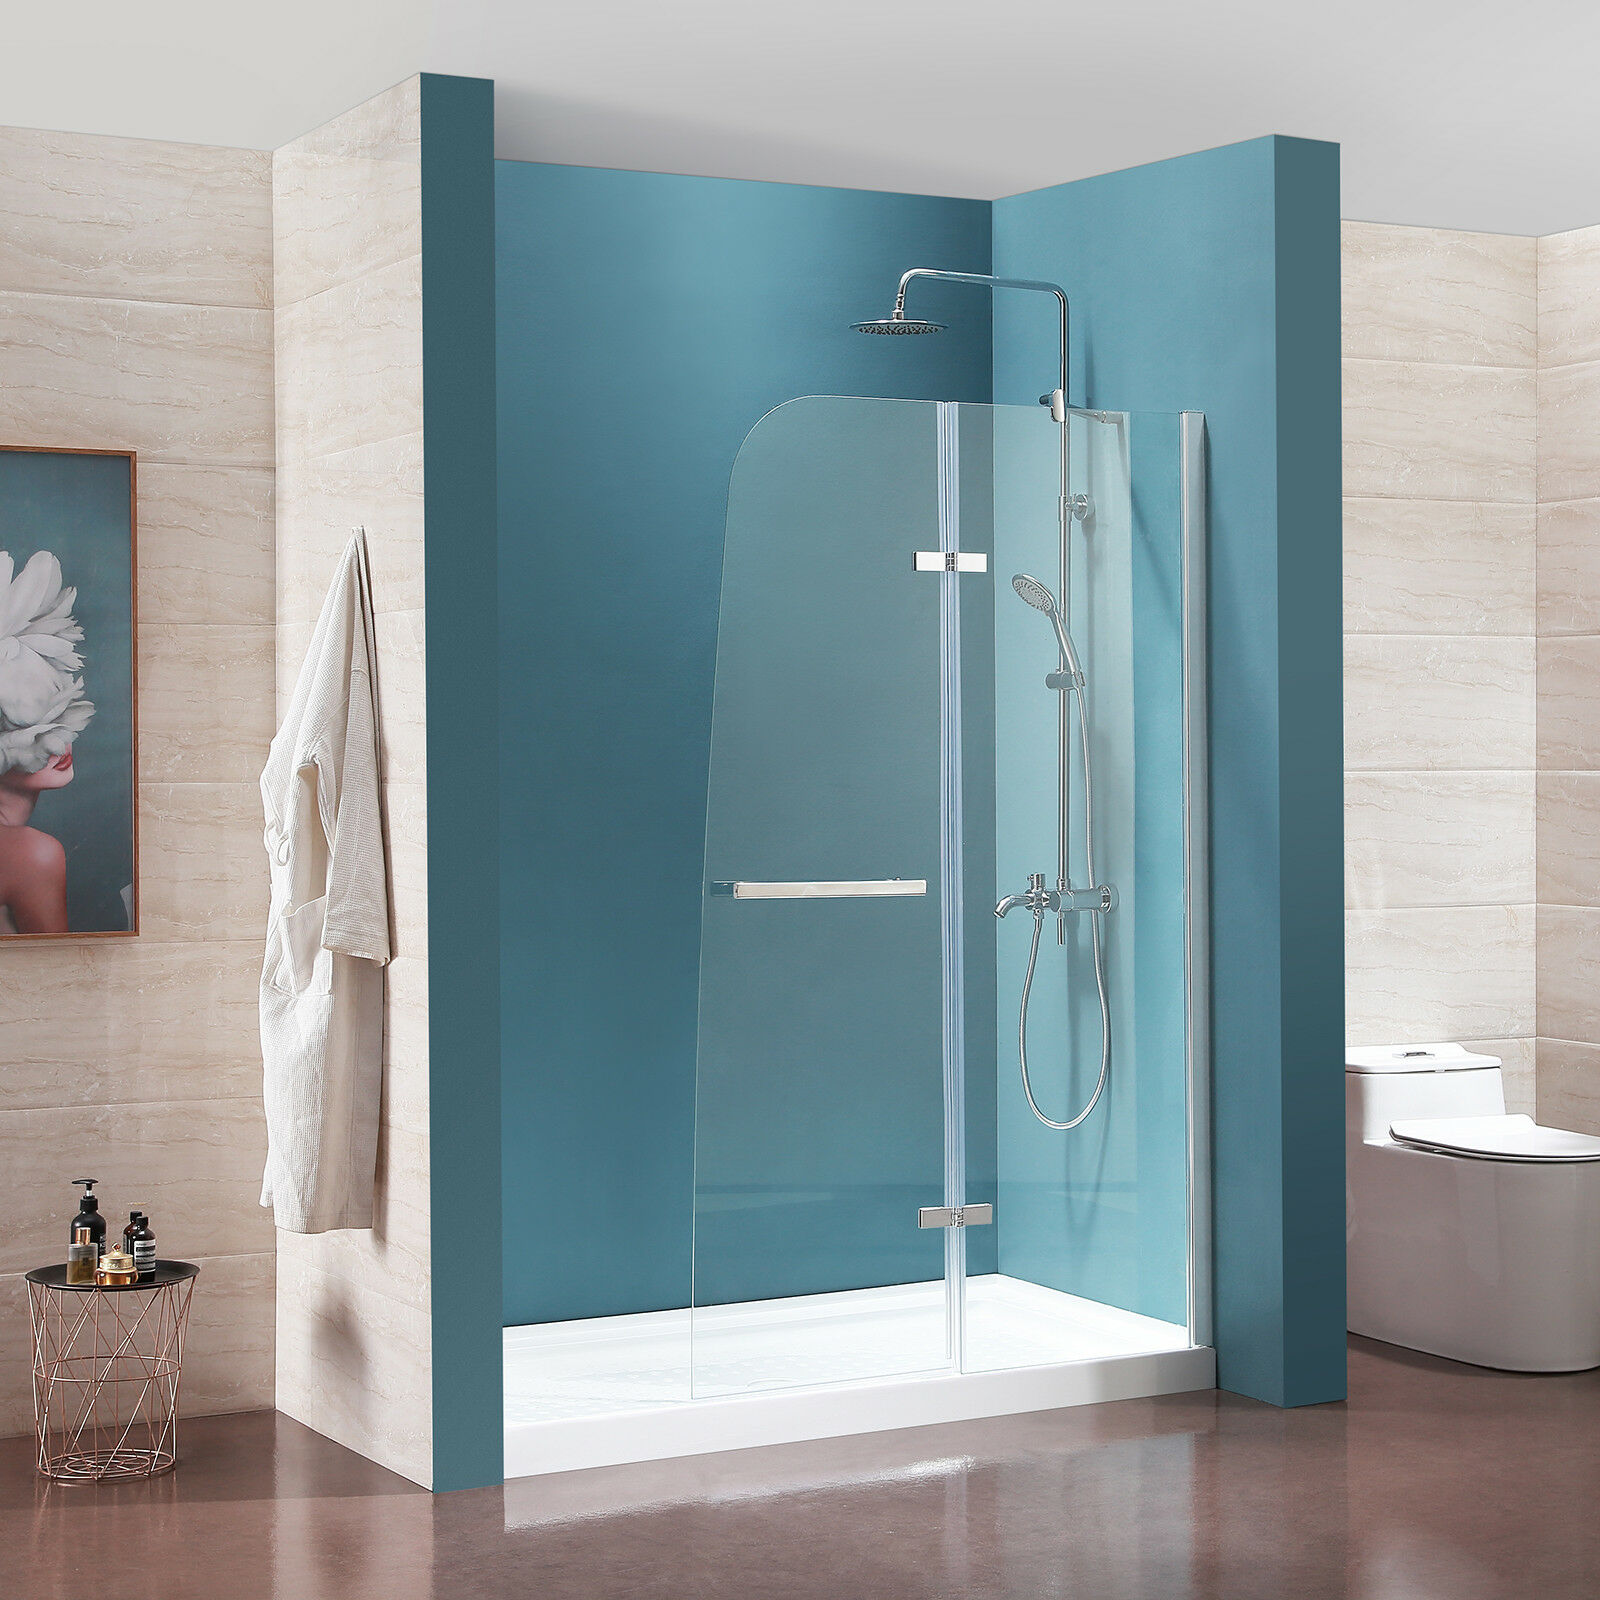 44 X 72 Frameless Hinged Shower Door Clear Tempered Glass Door Chrome Finish